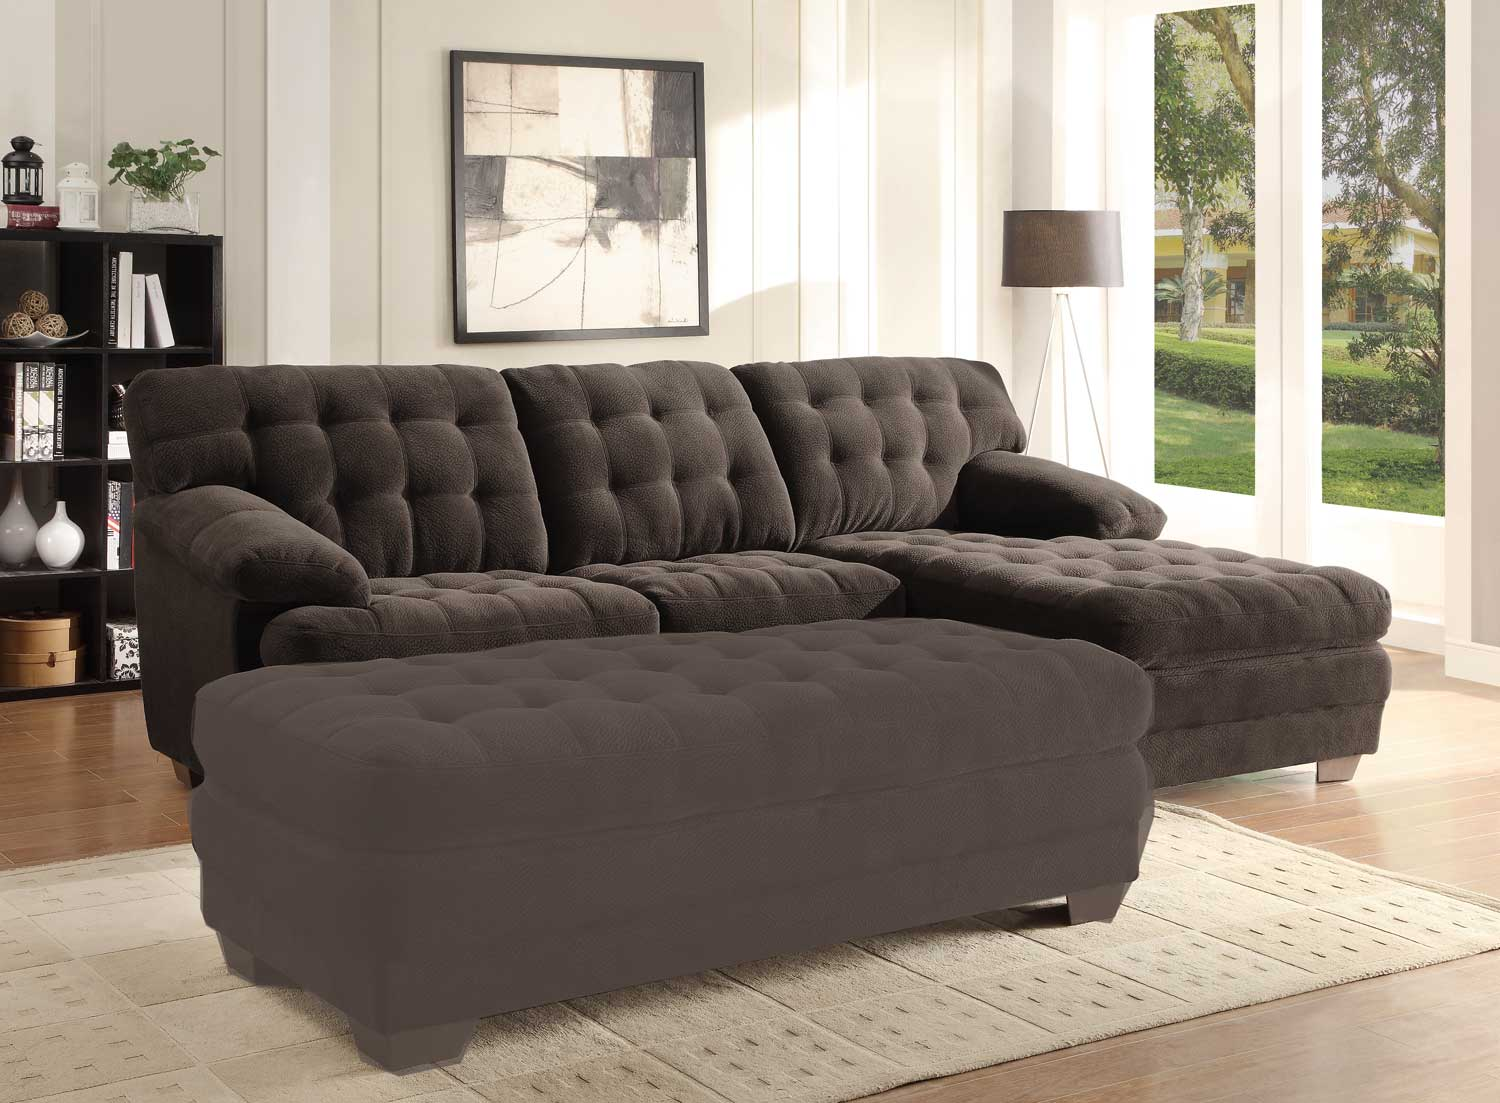 Homelegance Minnis Sectional Sofa - Chocolate